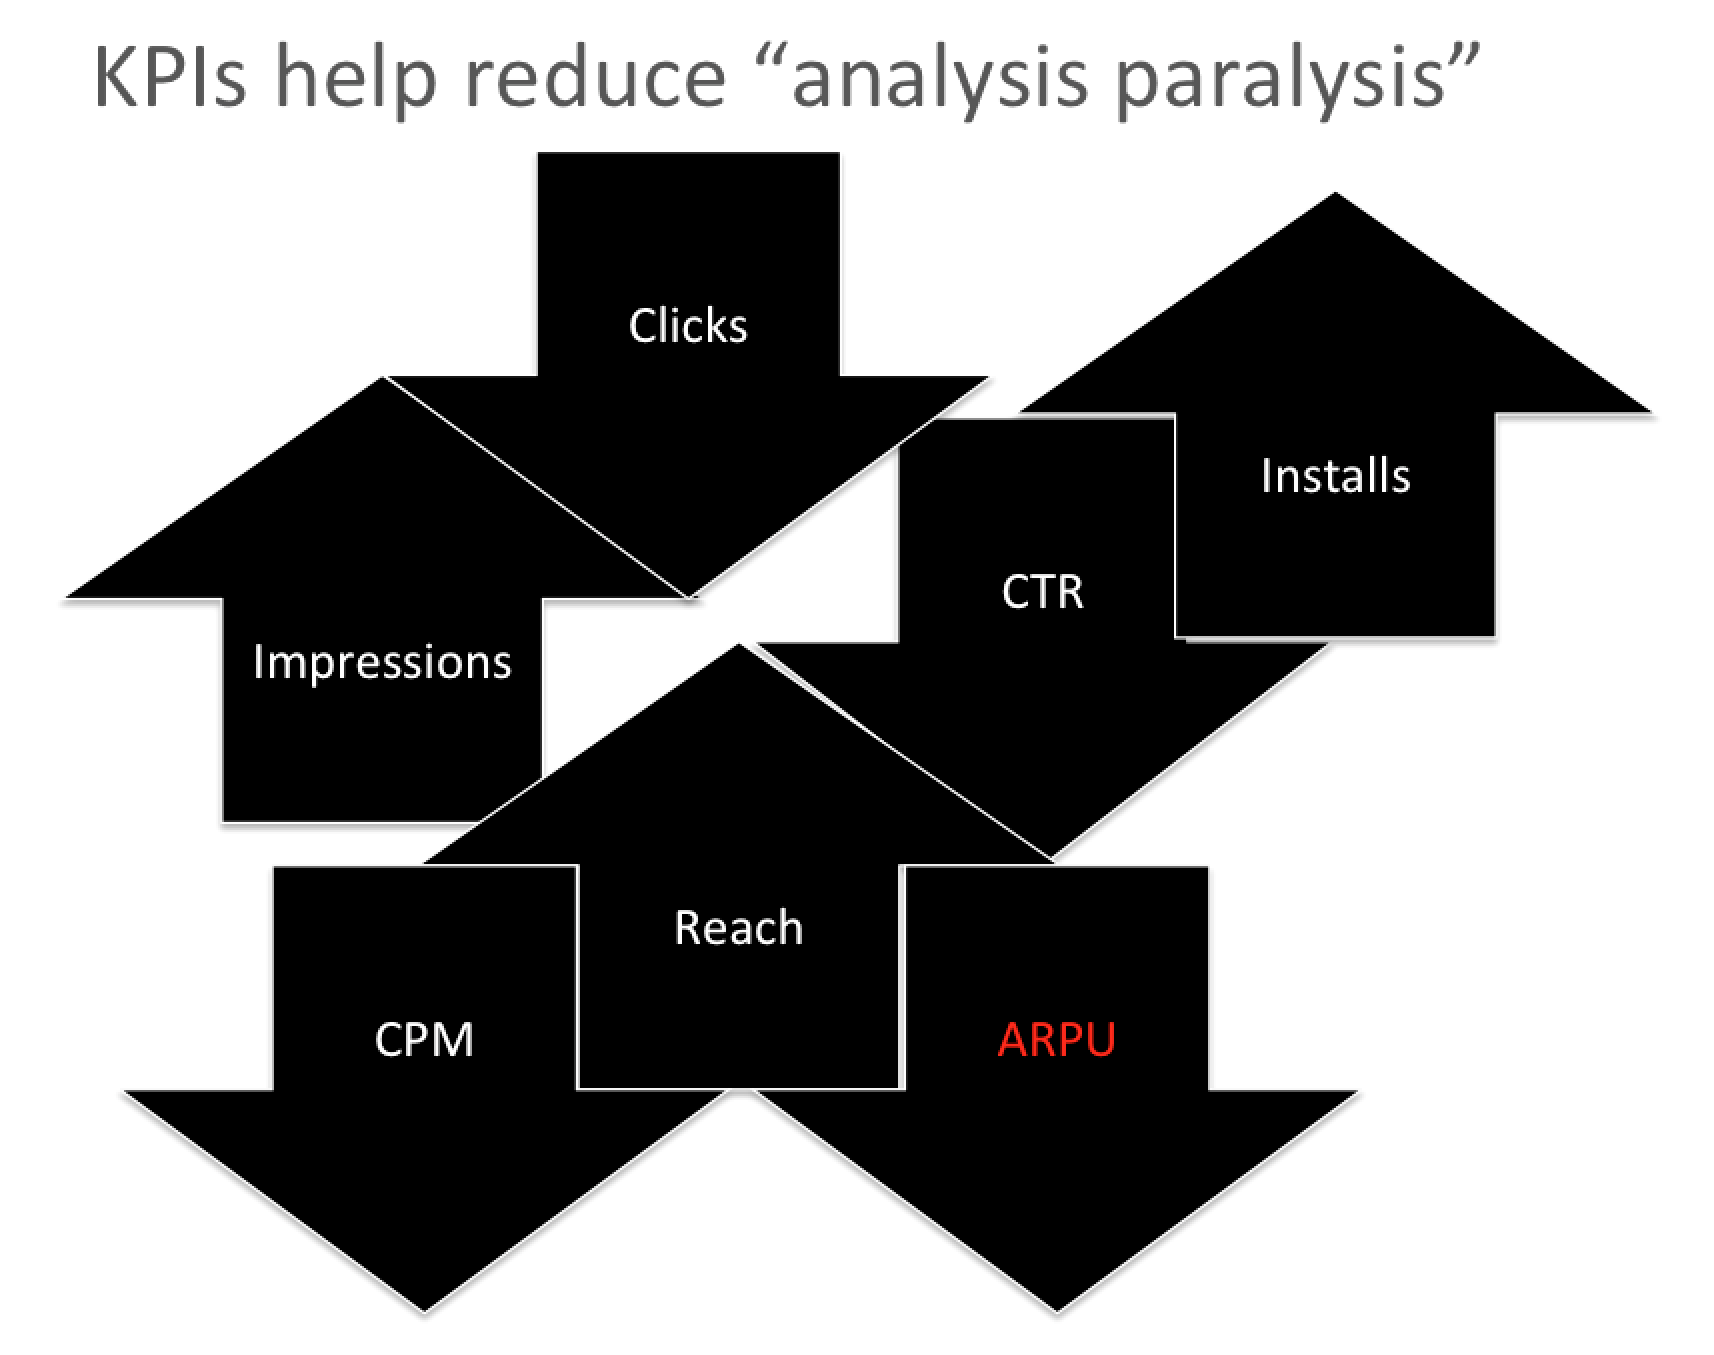 app-marketing-KPI-analysis-paralysis